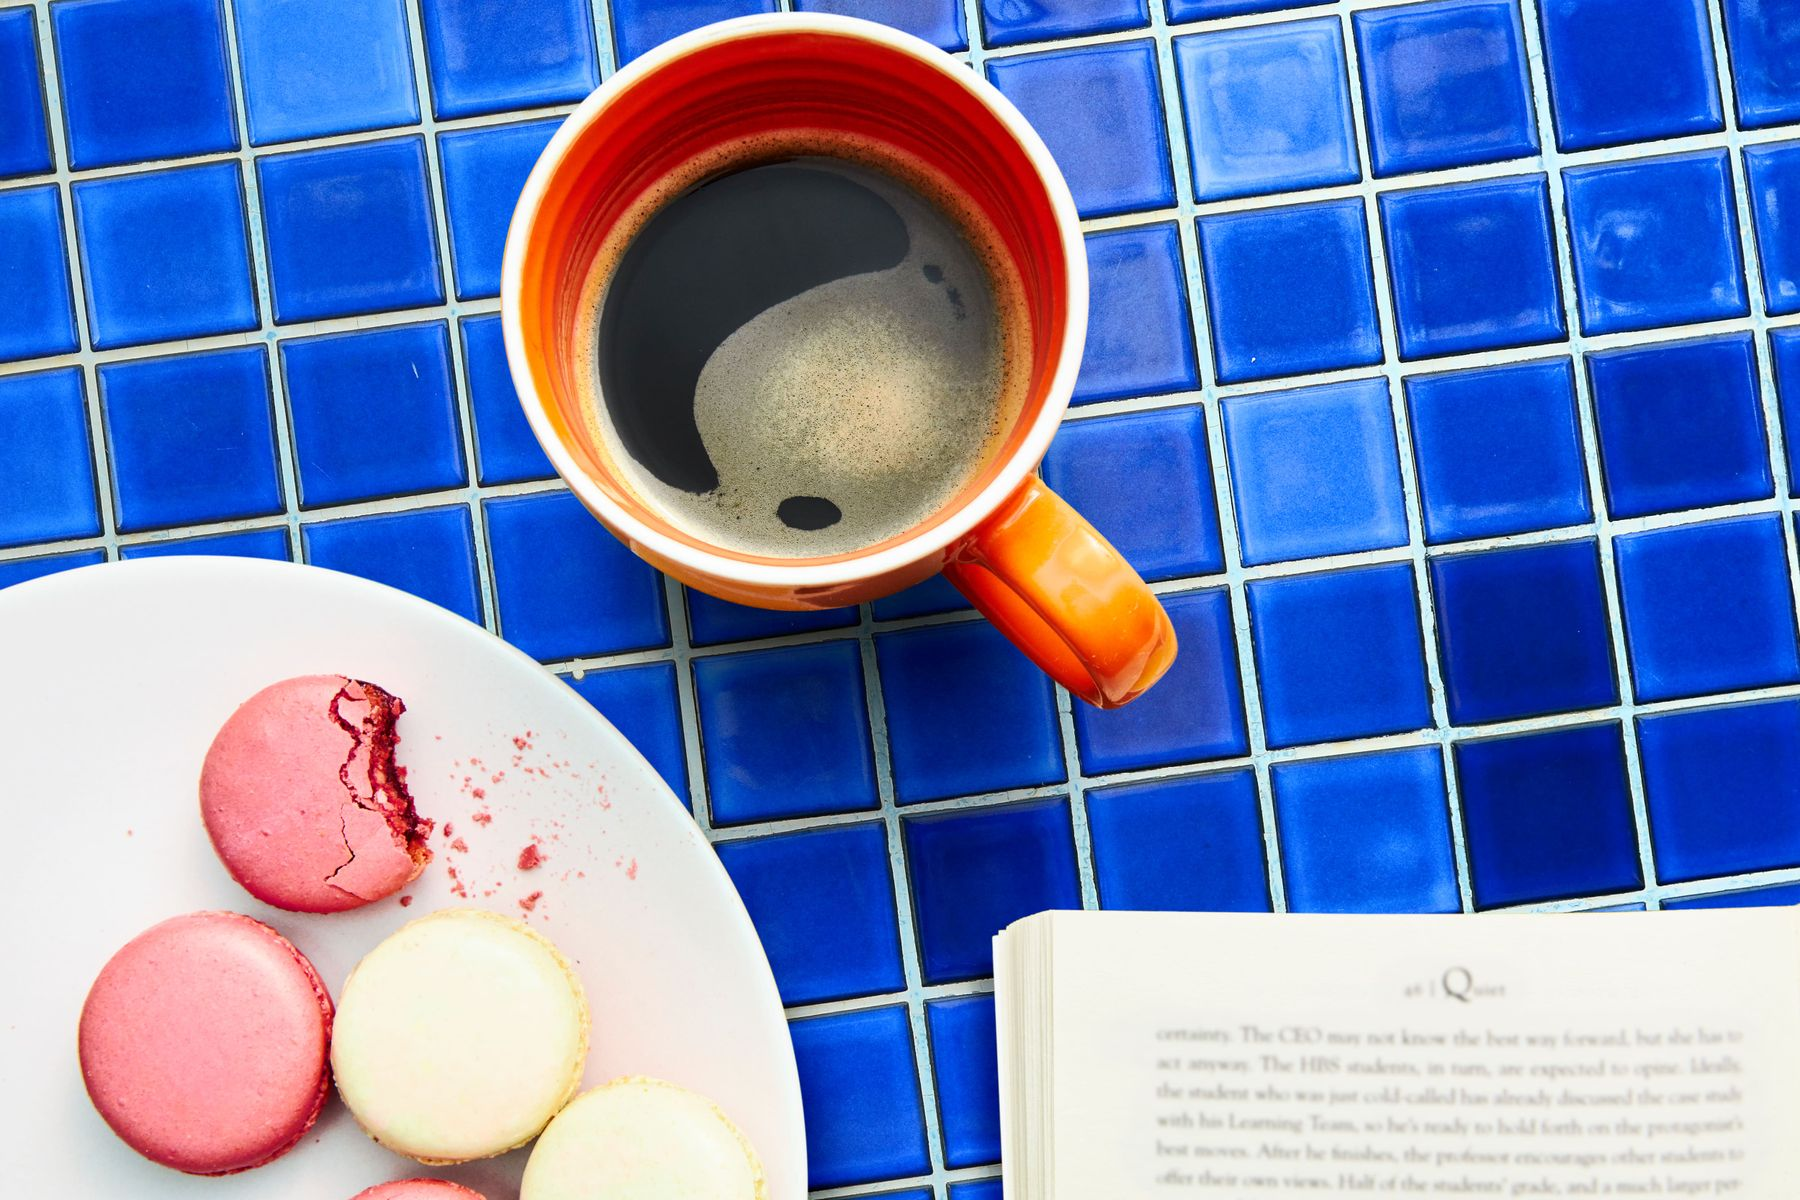 how to clean tiles: cup of coffee and macaroon on blue ceramic tiles